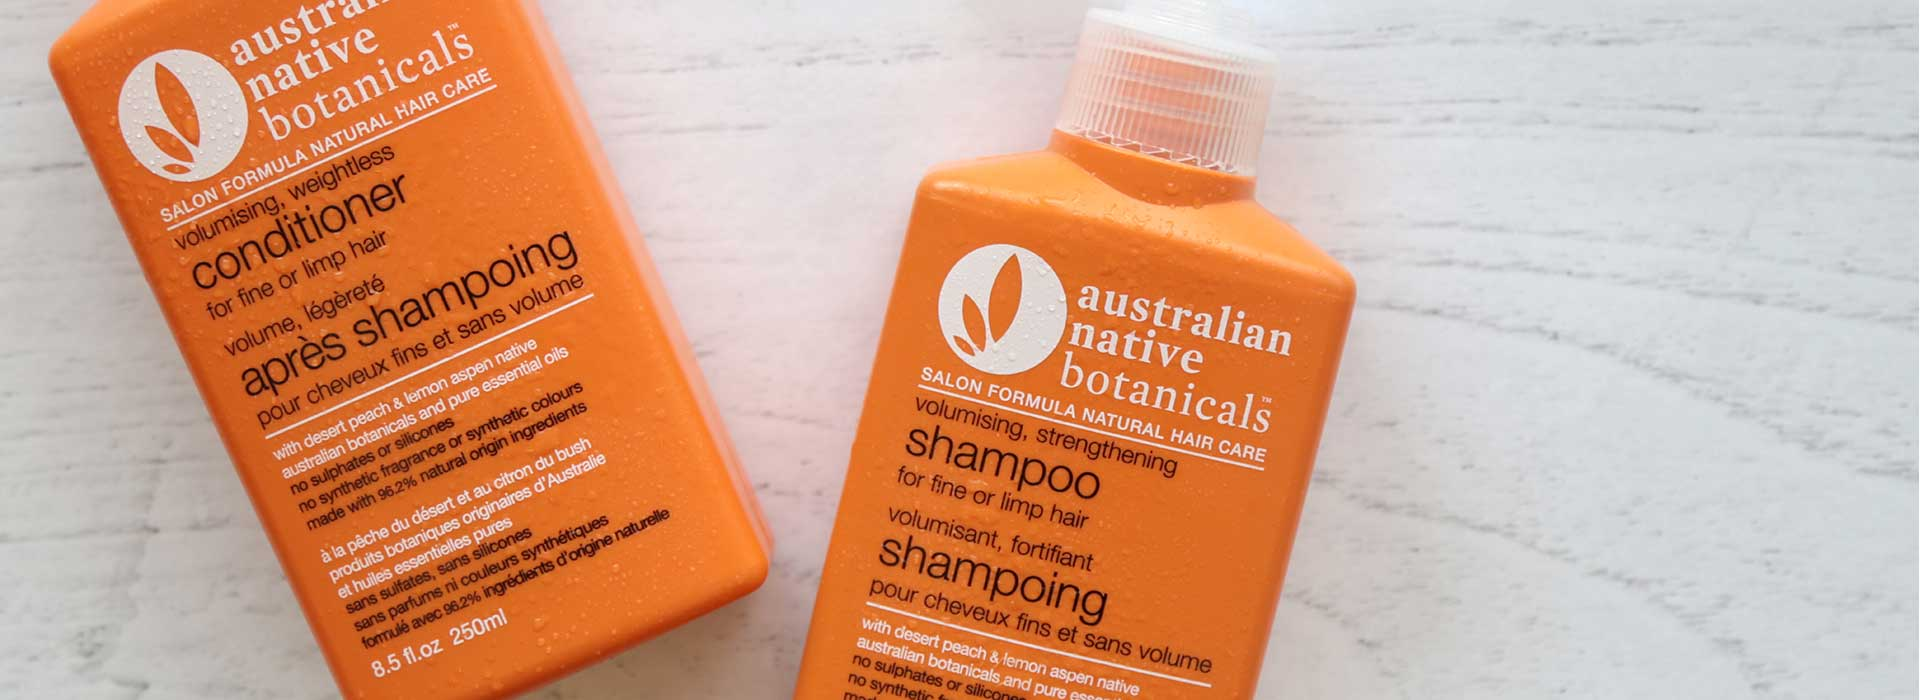 Australian Native Botanicals<br /> Volumising Weightless Conditioner<br /> for Fine or Limp Hair